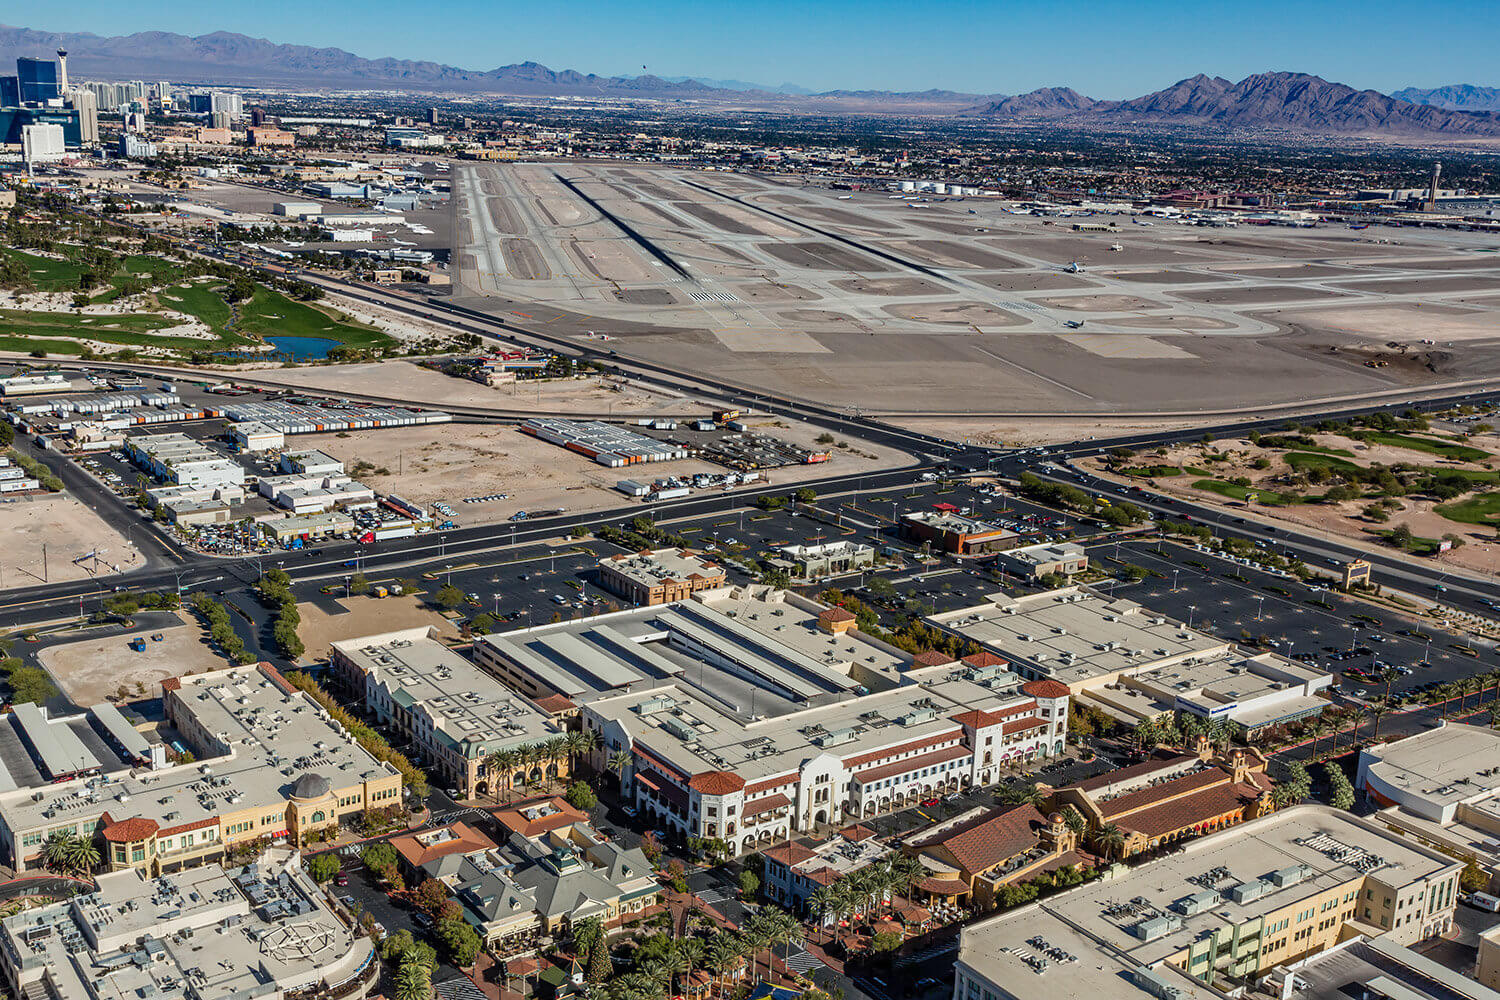 Airport-Helicopter-Aerial-Photography-002